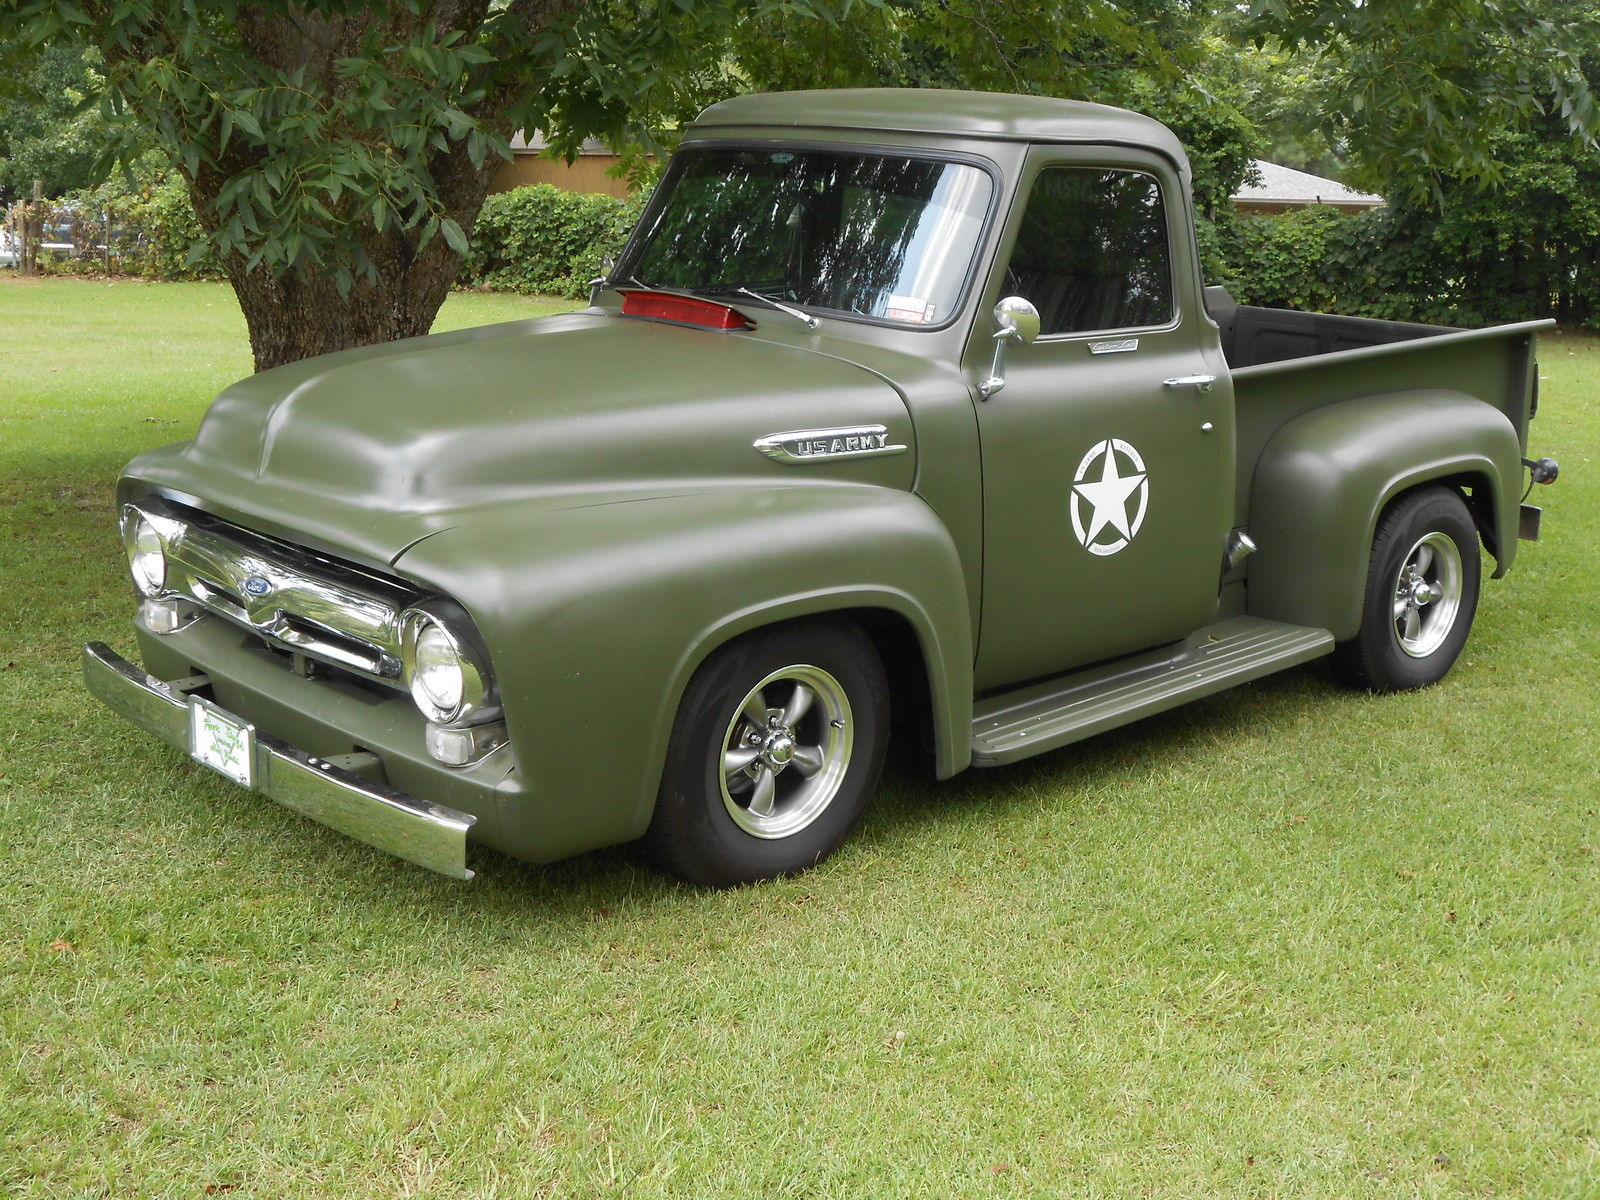 1953 ford f100 truck rat rod military custom classic ford f 100 1953 for sale. Black Bedroom Furniture Sets. Home Design Ideas